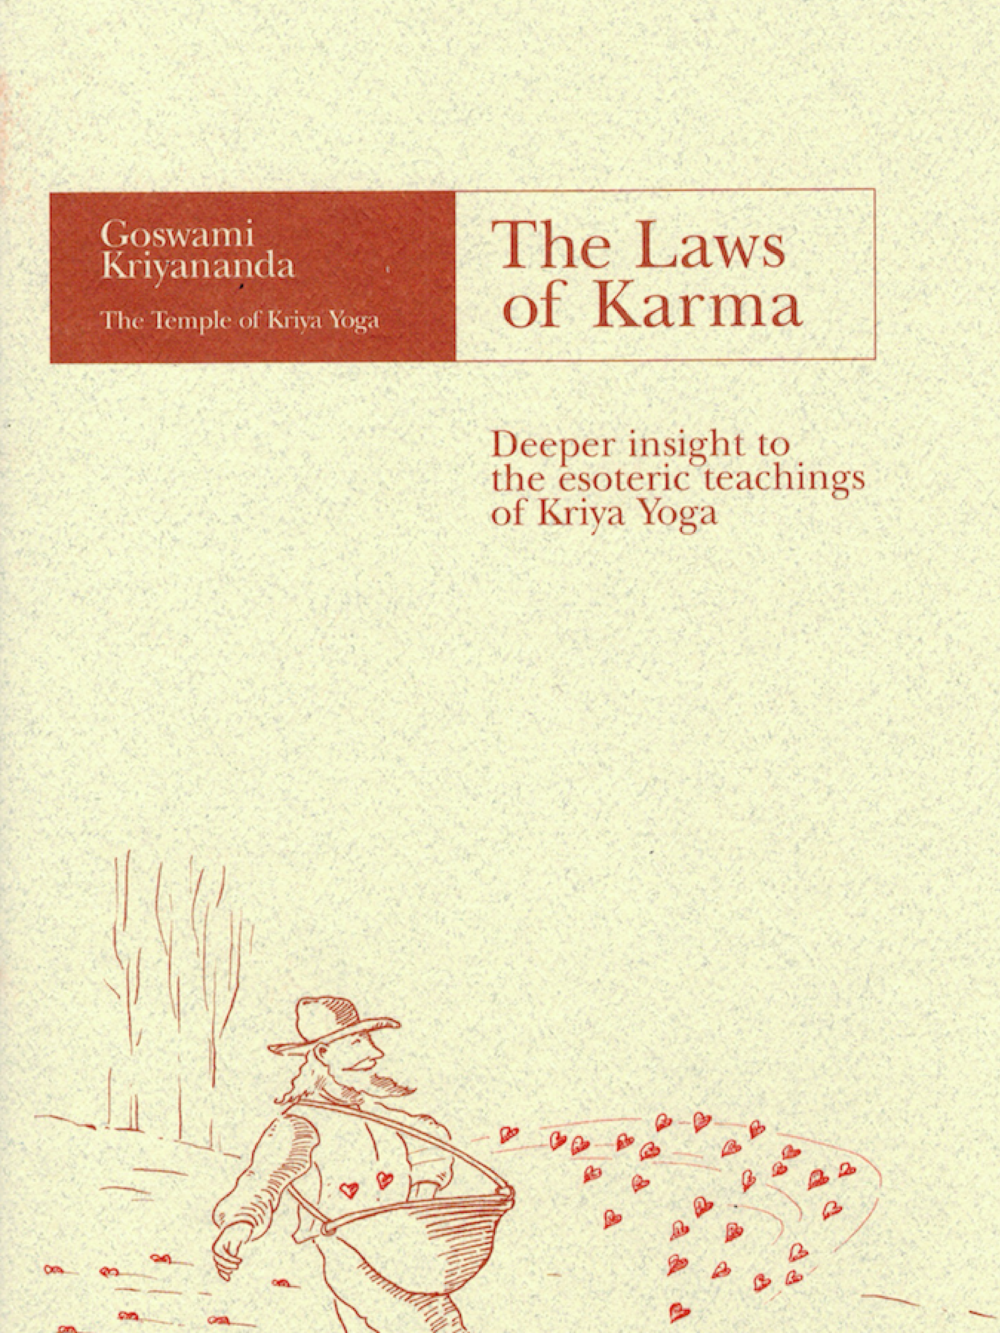 The Laws of Karma - $14.95